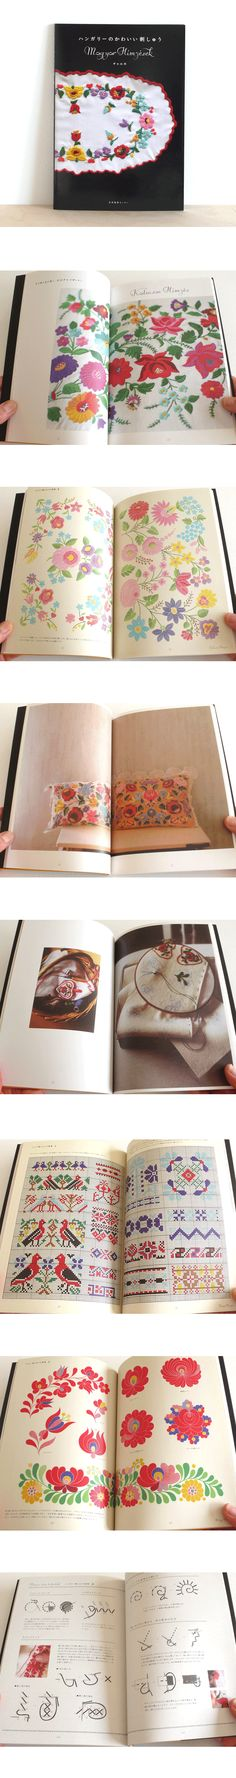 hungarian embroidery japanese craft book [beautiful embroidery, beautiful sewing, unusual embroidery]